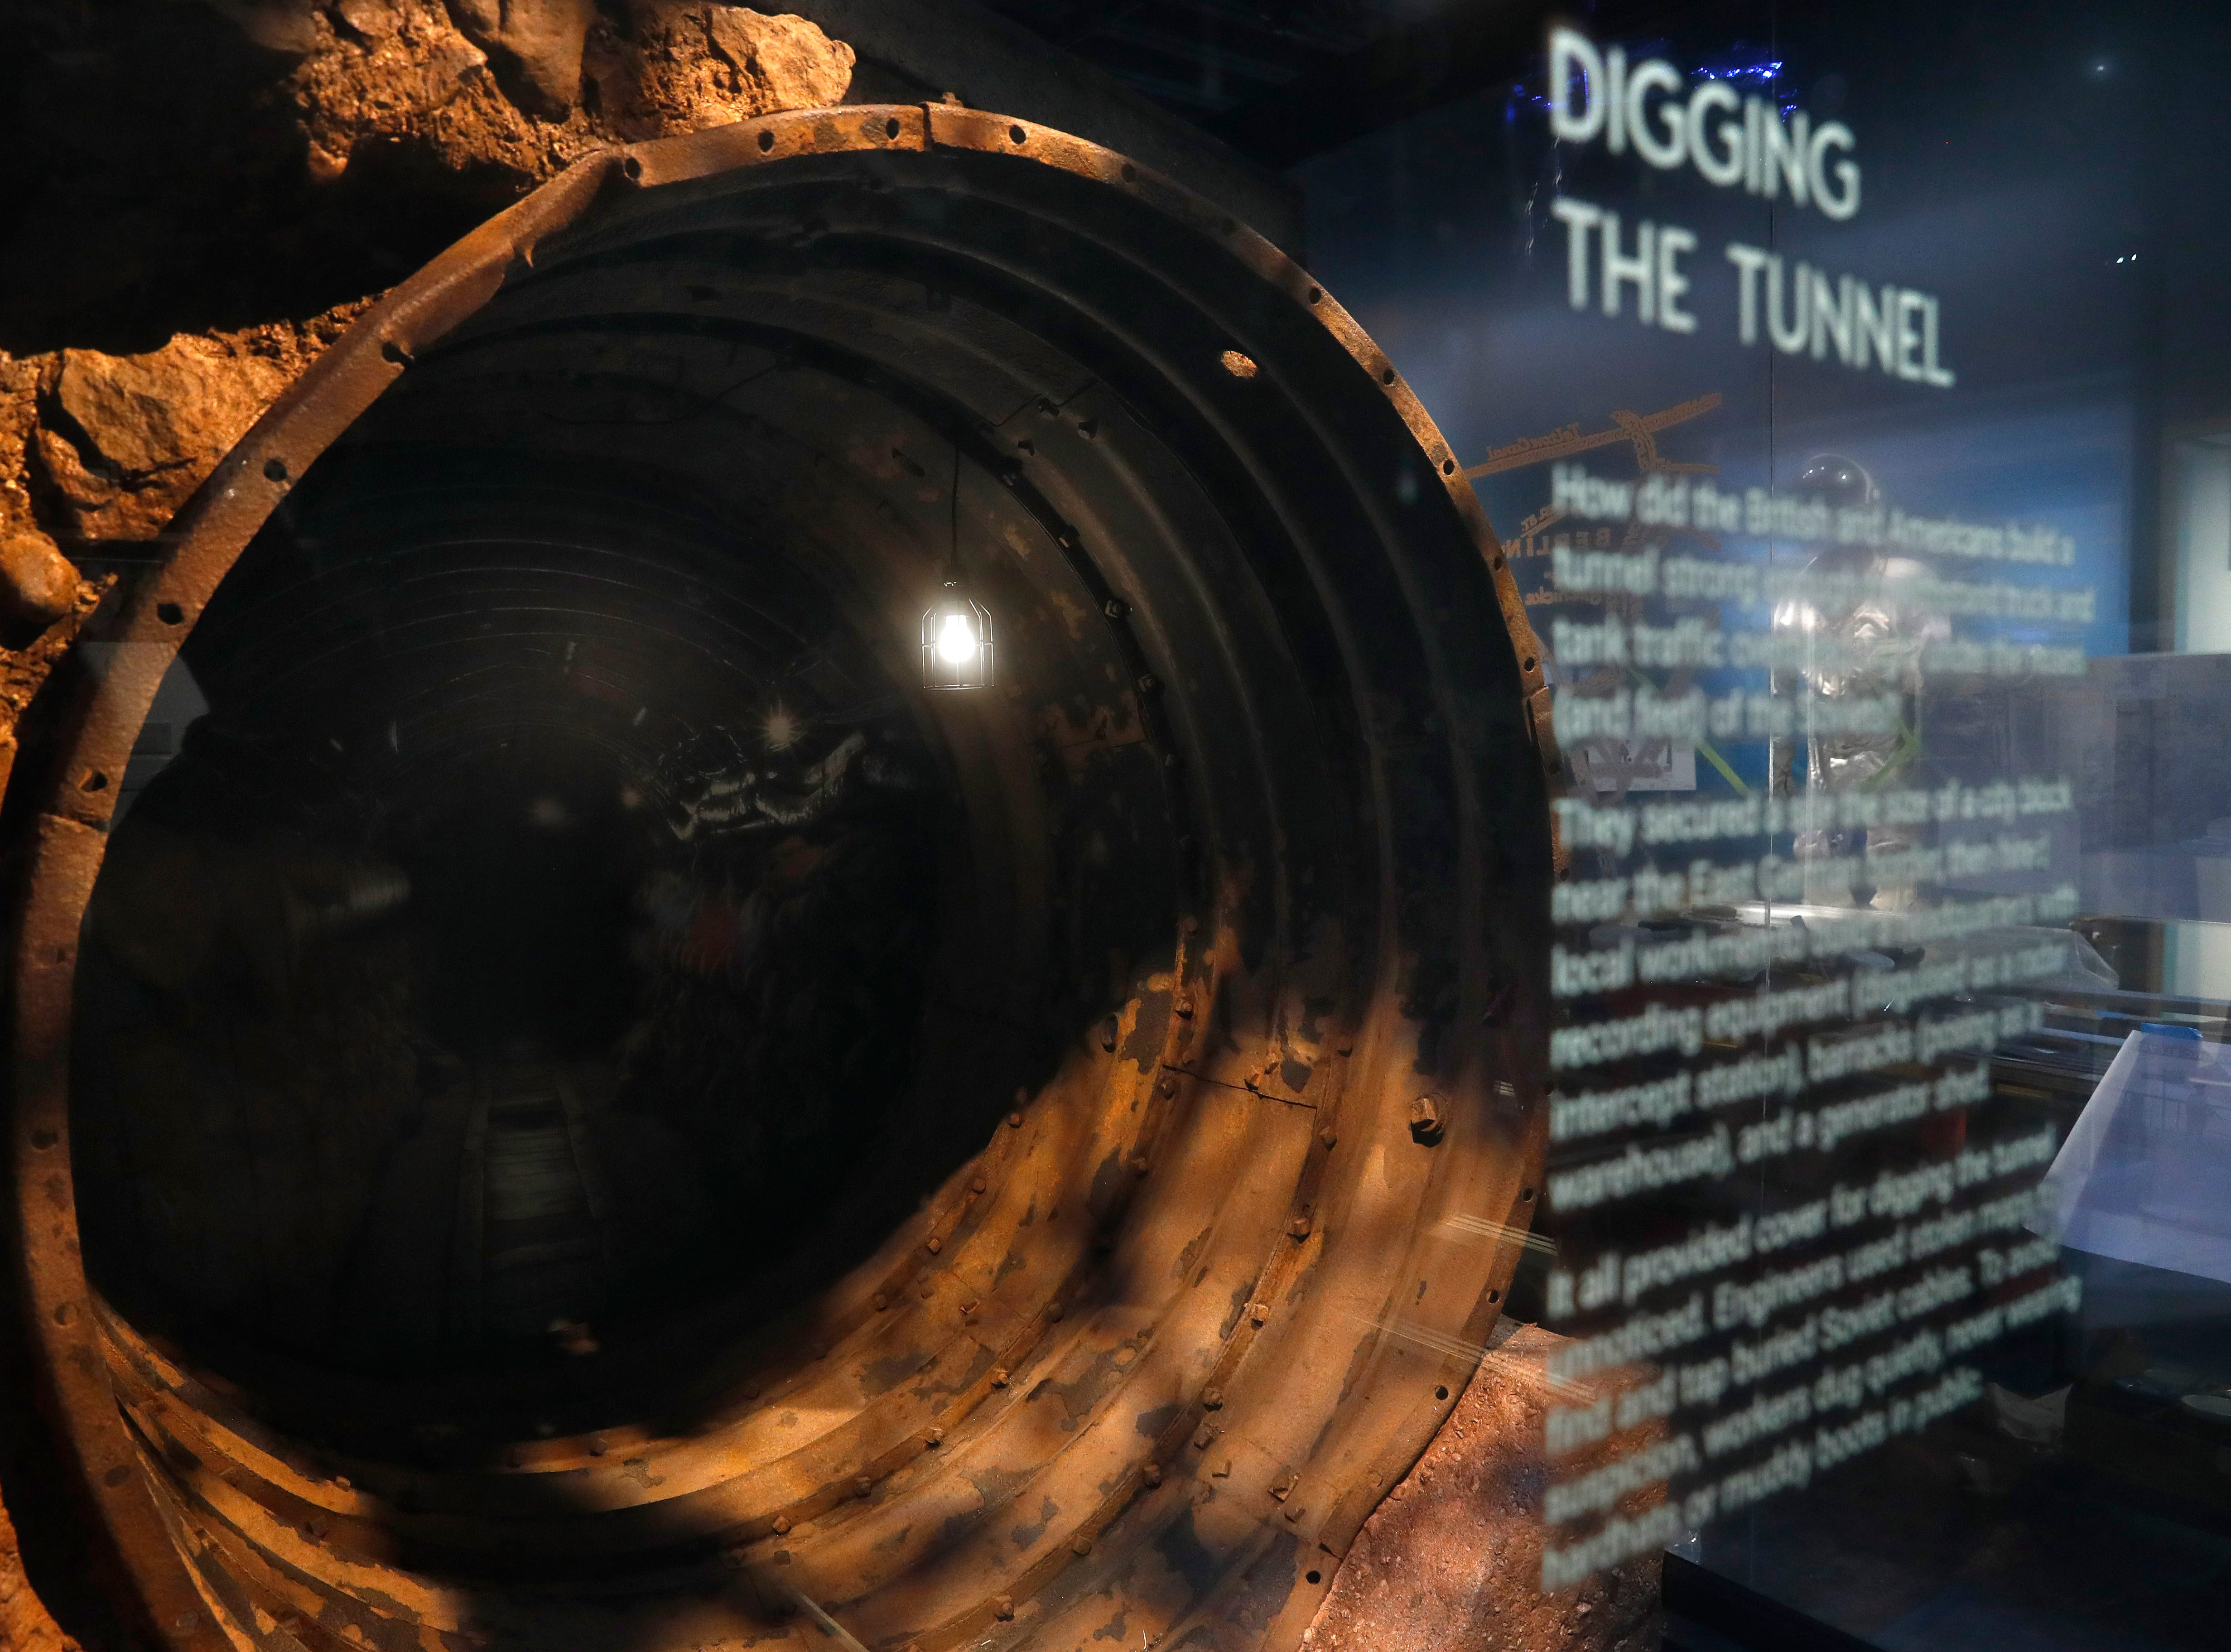 A piece of tunnel into East Germany that was used to tap into Soviet and East German communications is among the exhibits.